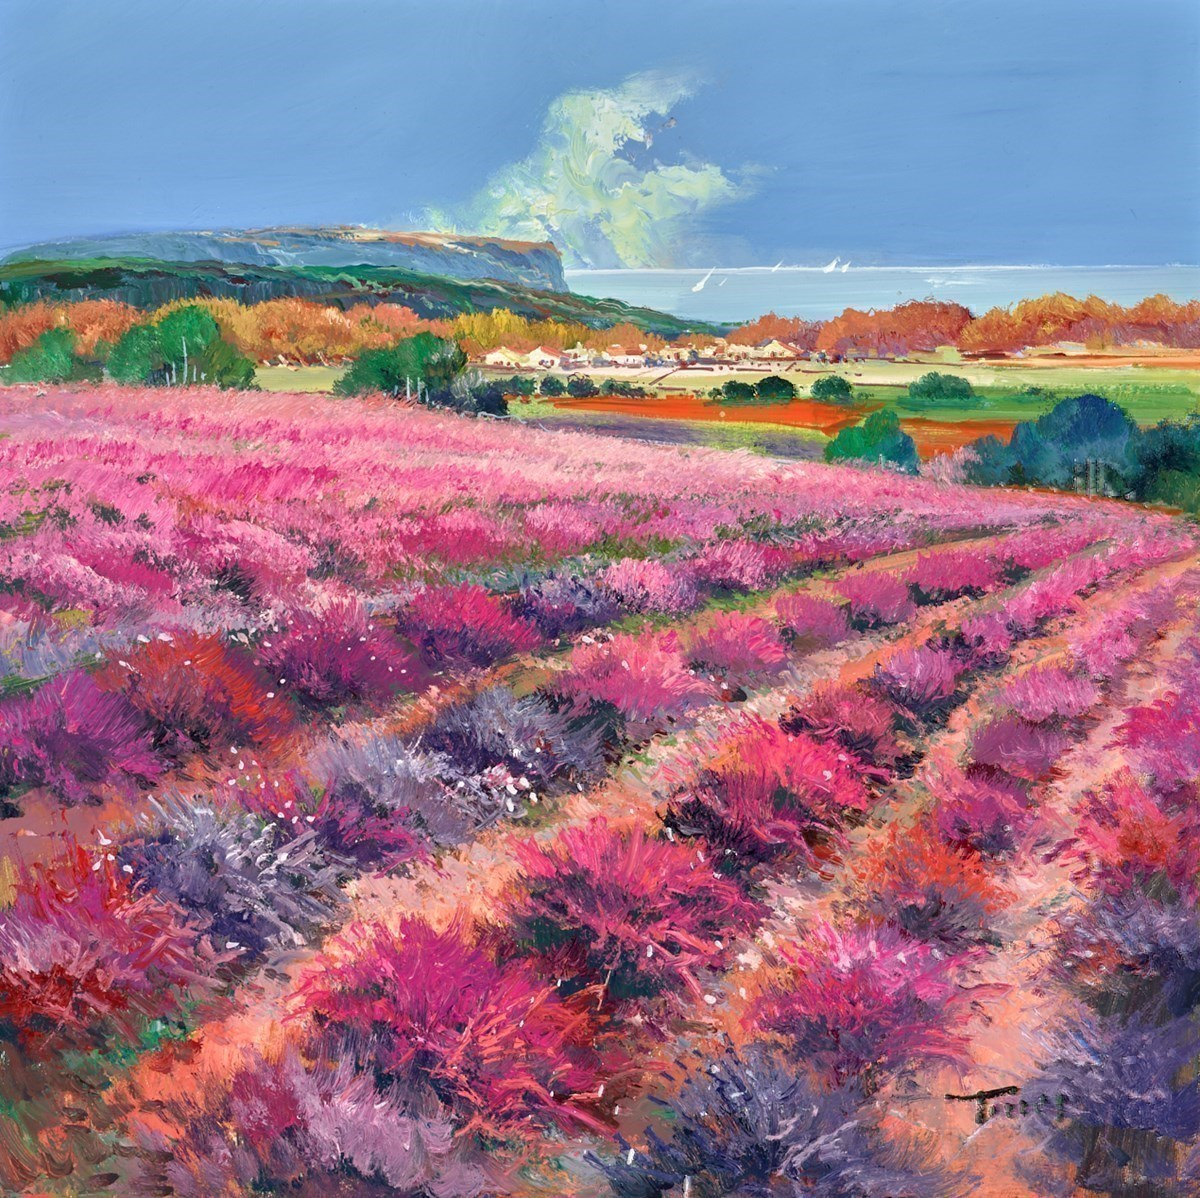 Pink Fields IV by Torres -  sized 24x24 inches. Available from Whitewall Galleries